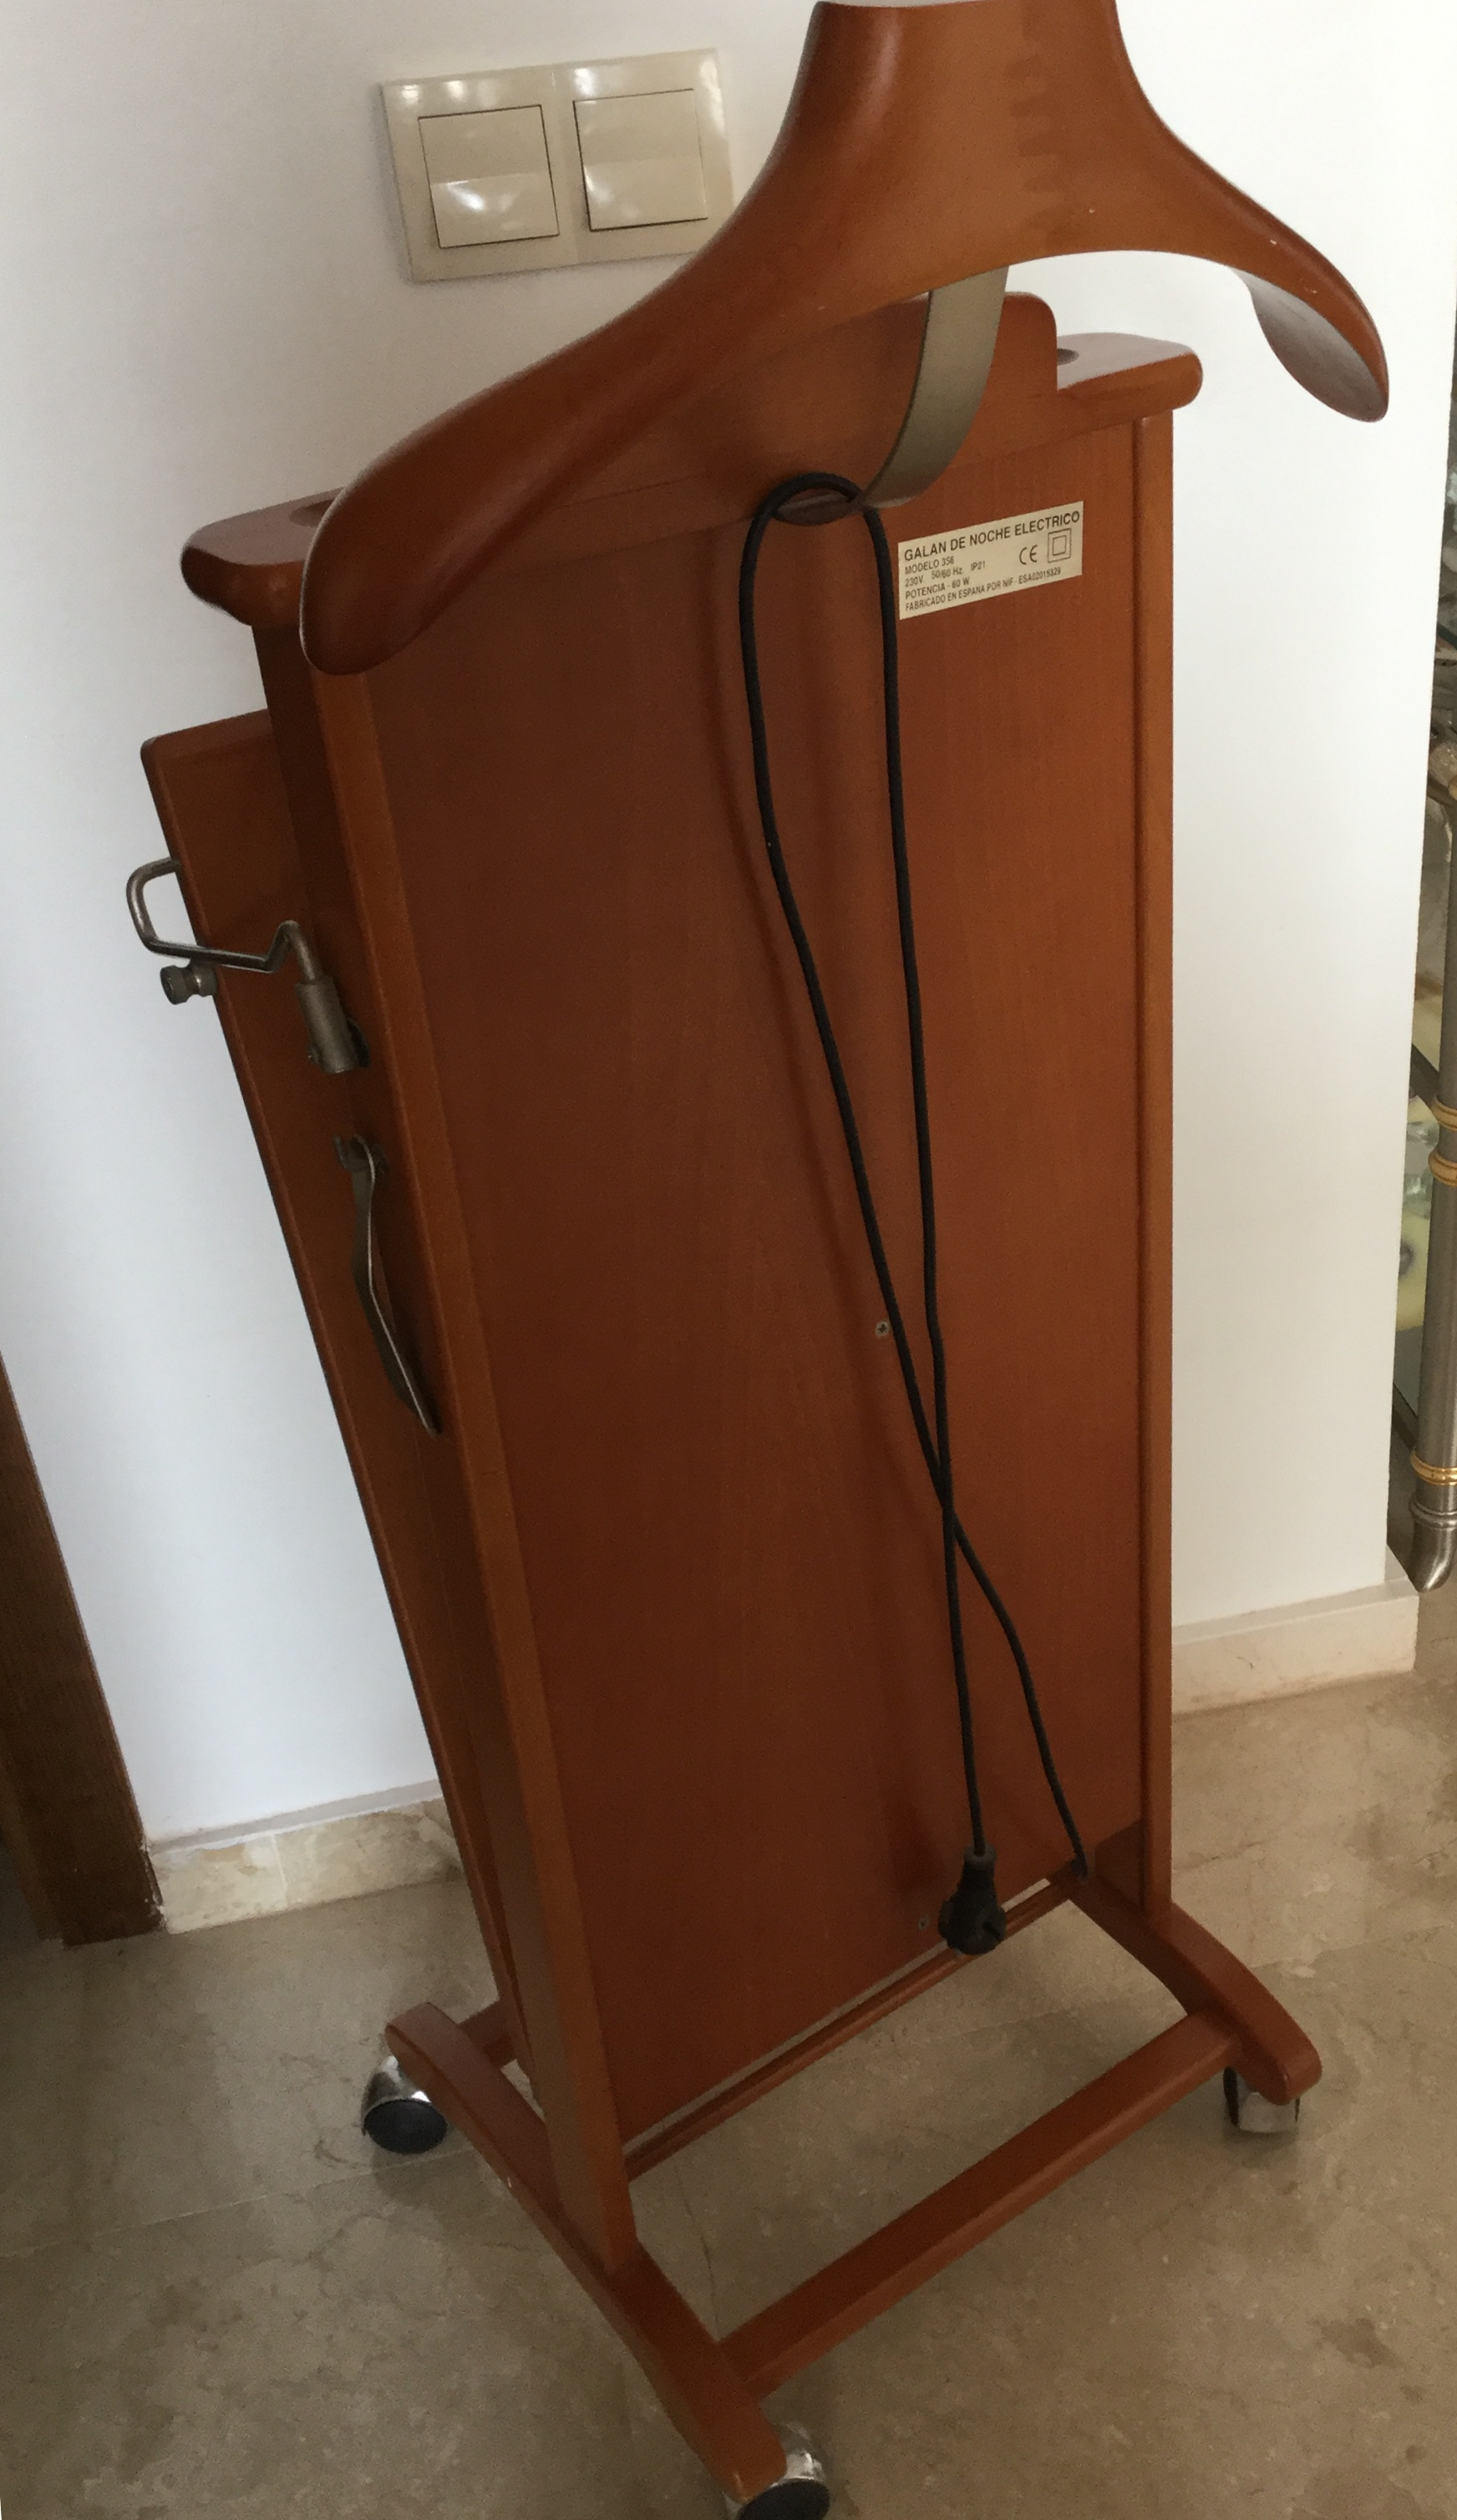 For sale: Trouser Press - Buy and sell items in Punta Prima